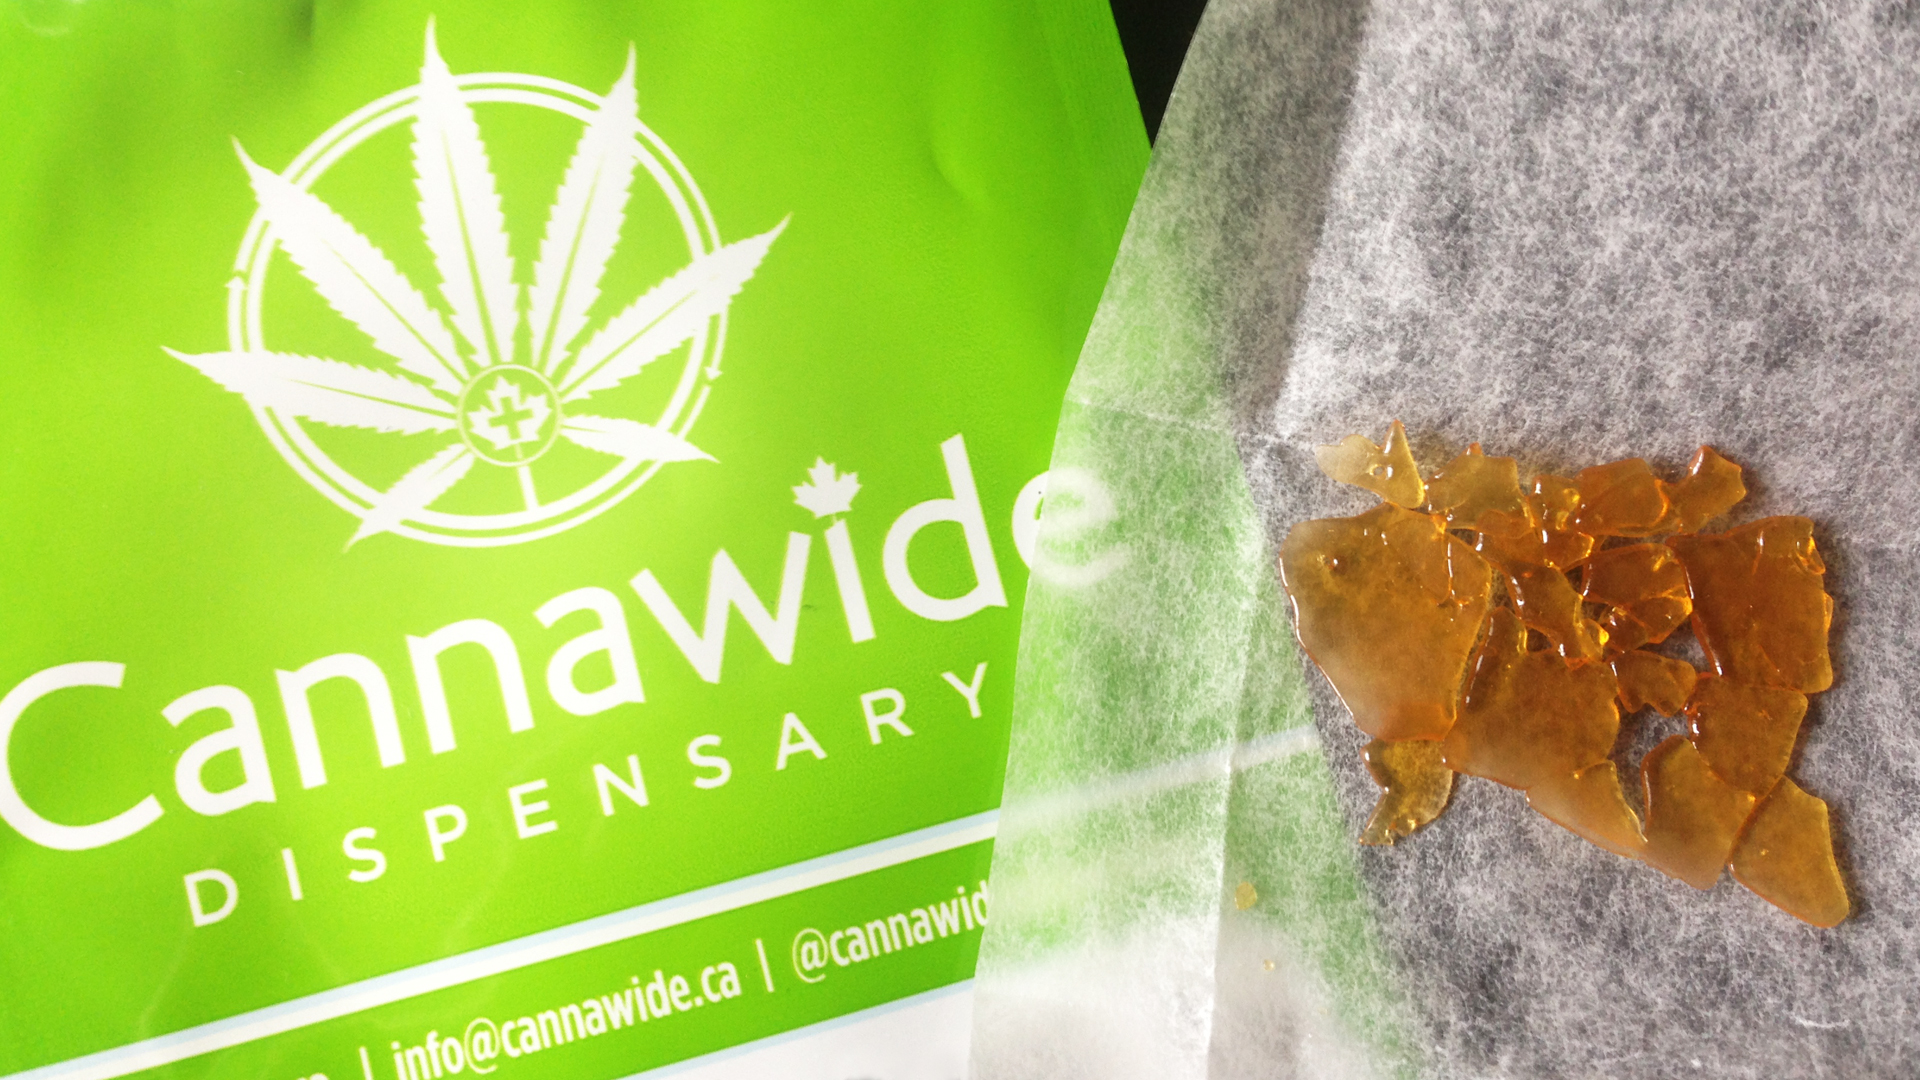 Cannawide Extract Zen Party